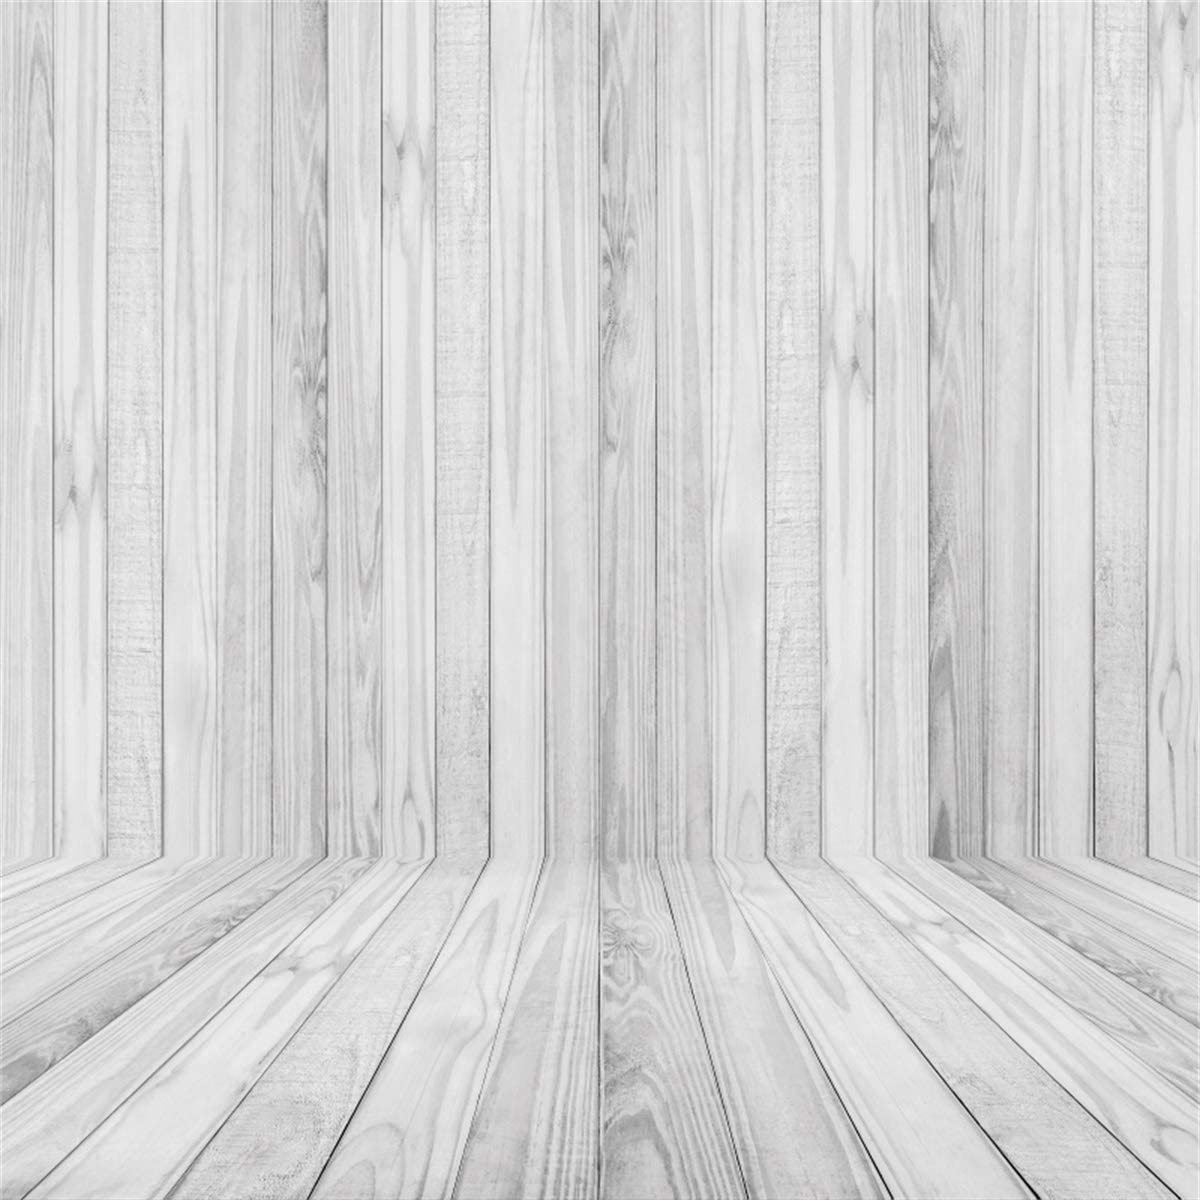 YEELE White Room Wall Backdrop 6.5x6.5ft 3D Fashion Tile Wall Interior Photography Background Modern House and Home Design Kids Adults Artistic Portrait Photoshoot Studio Props Digital Wallpaper